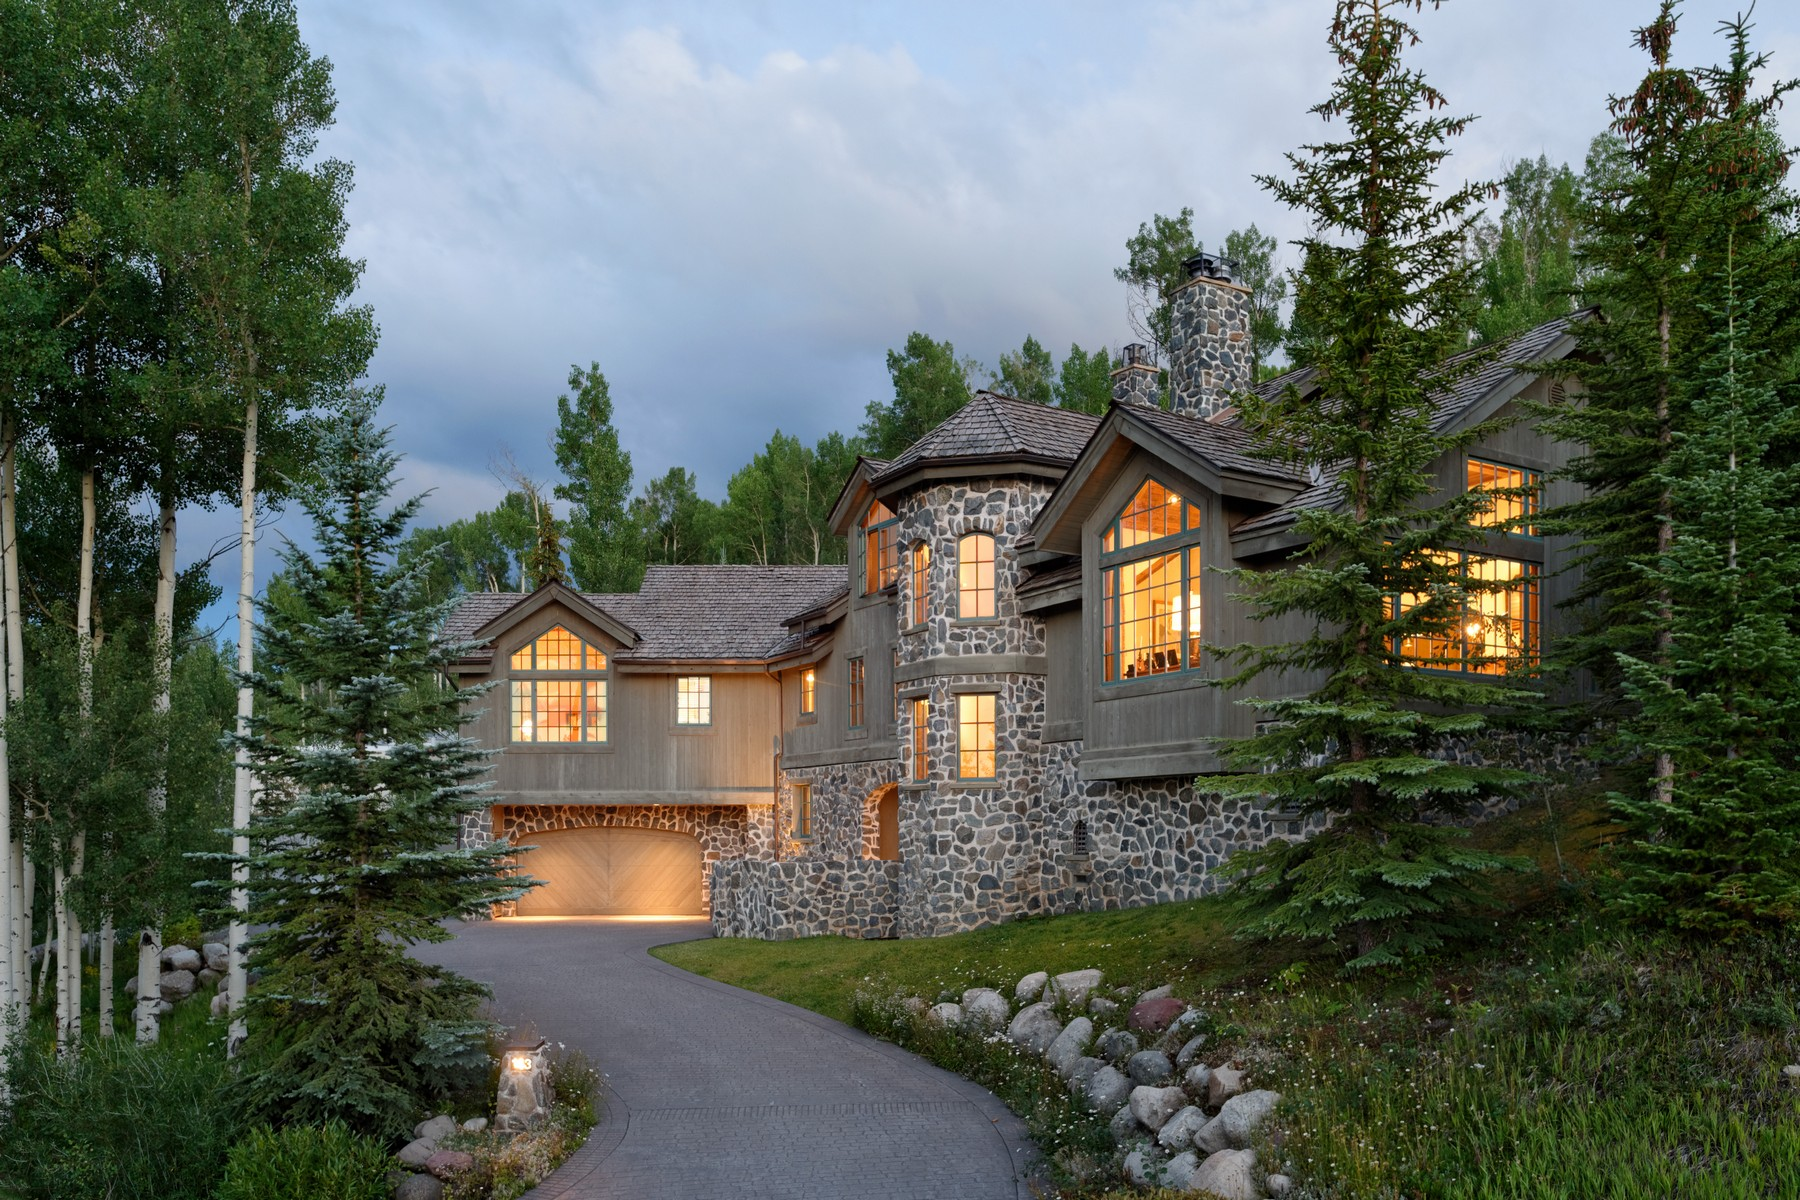 Casa Unifamiliar por un Alquiler en 143 Aspen Way Snowmass Village, Colorado, 81615 Estados Unidos